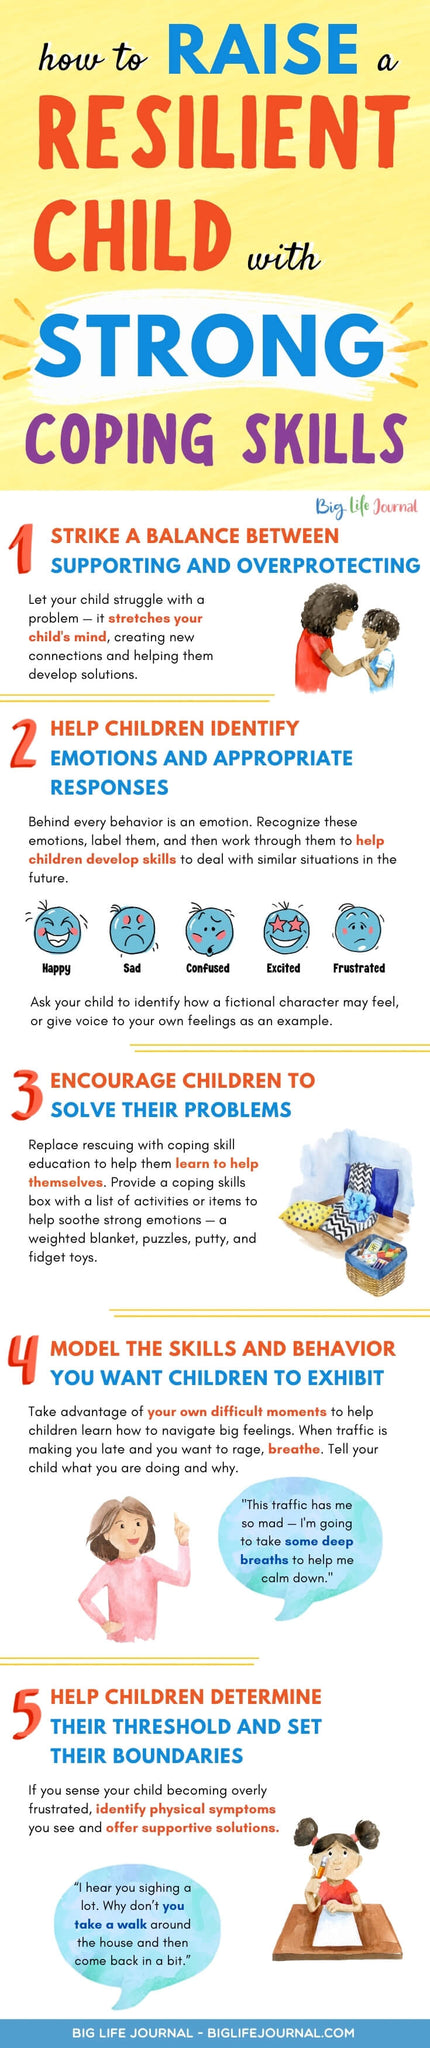 Raise a Resilient Child with Strong Coping Skills